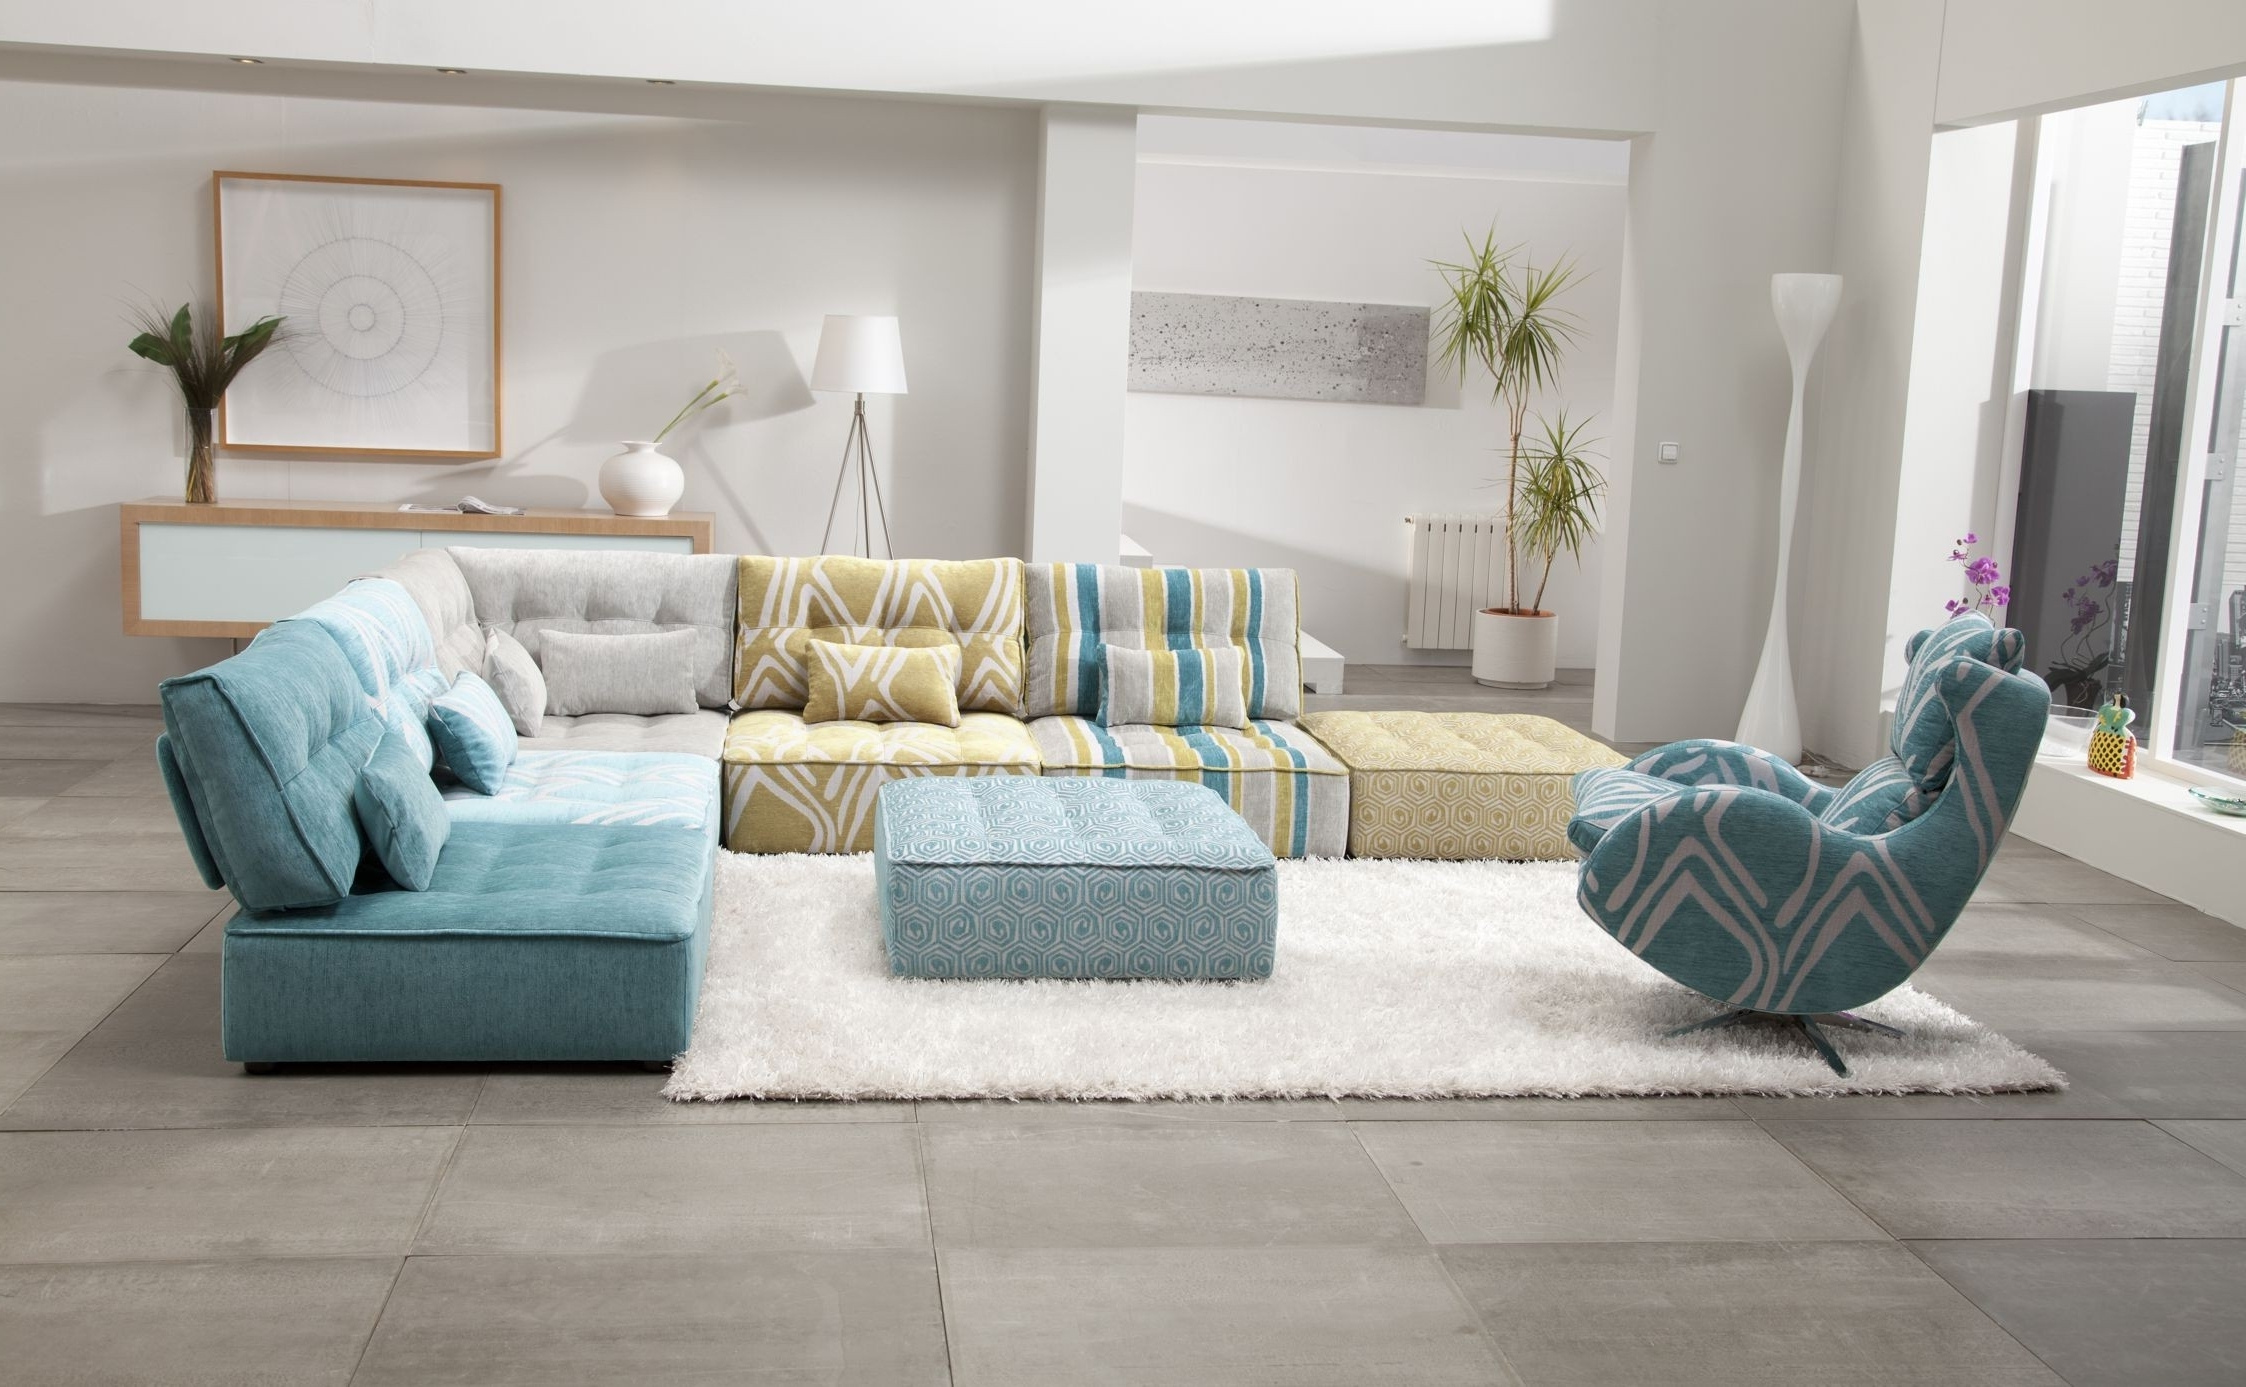 Fama Sofas Throughout Modular Sectional Sofas (View 2 of 15)